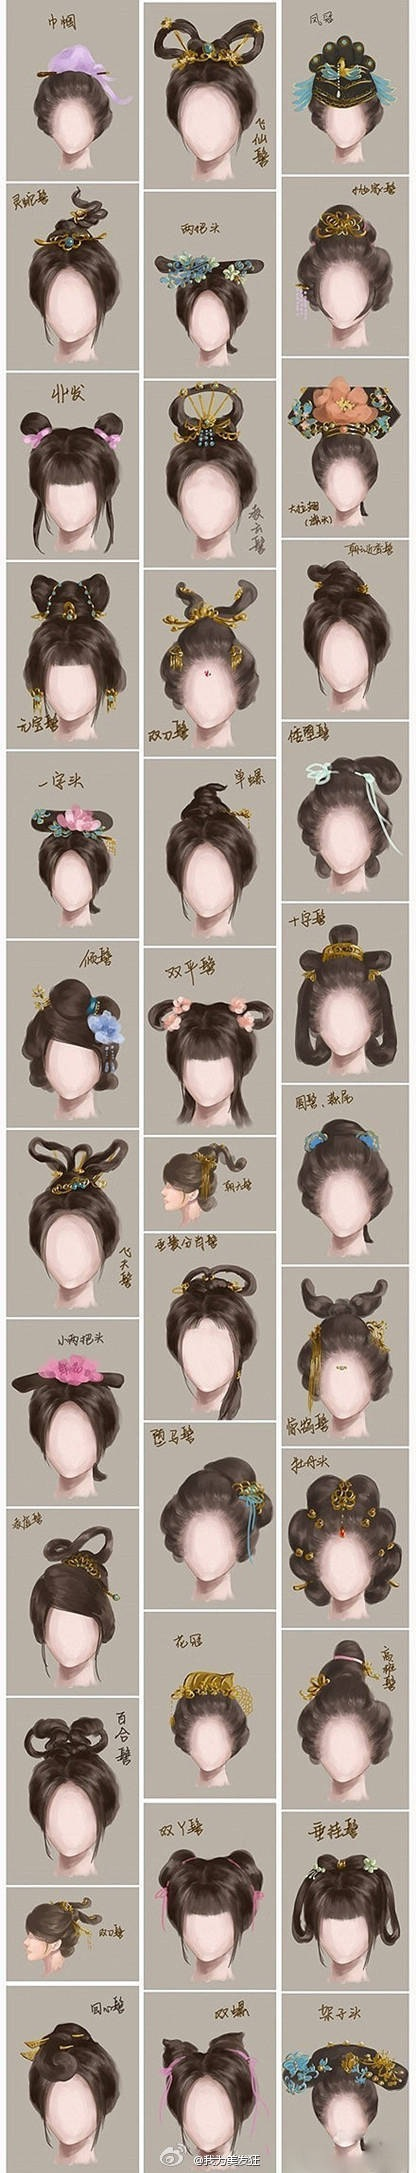 ancient chinese women hairstyle | life in 2019 | historical